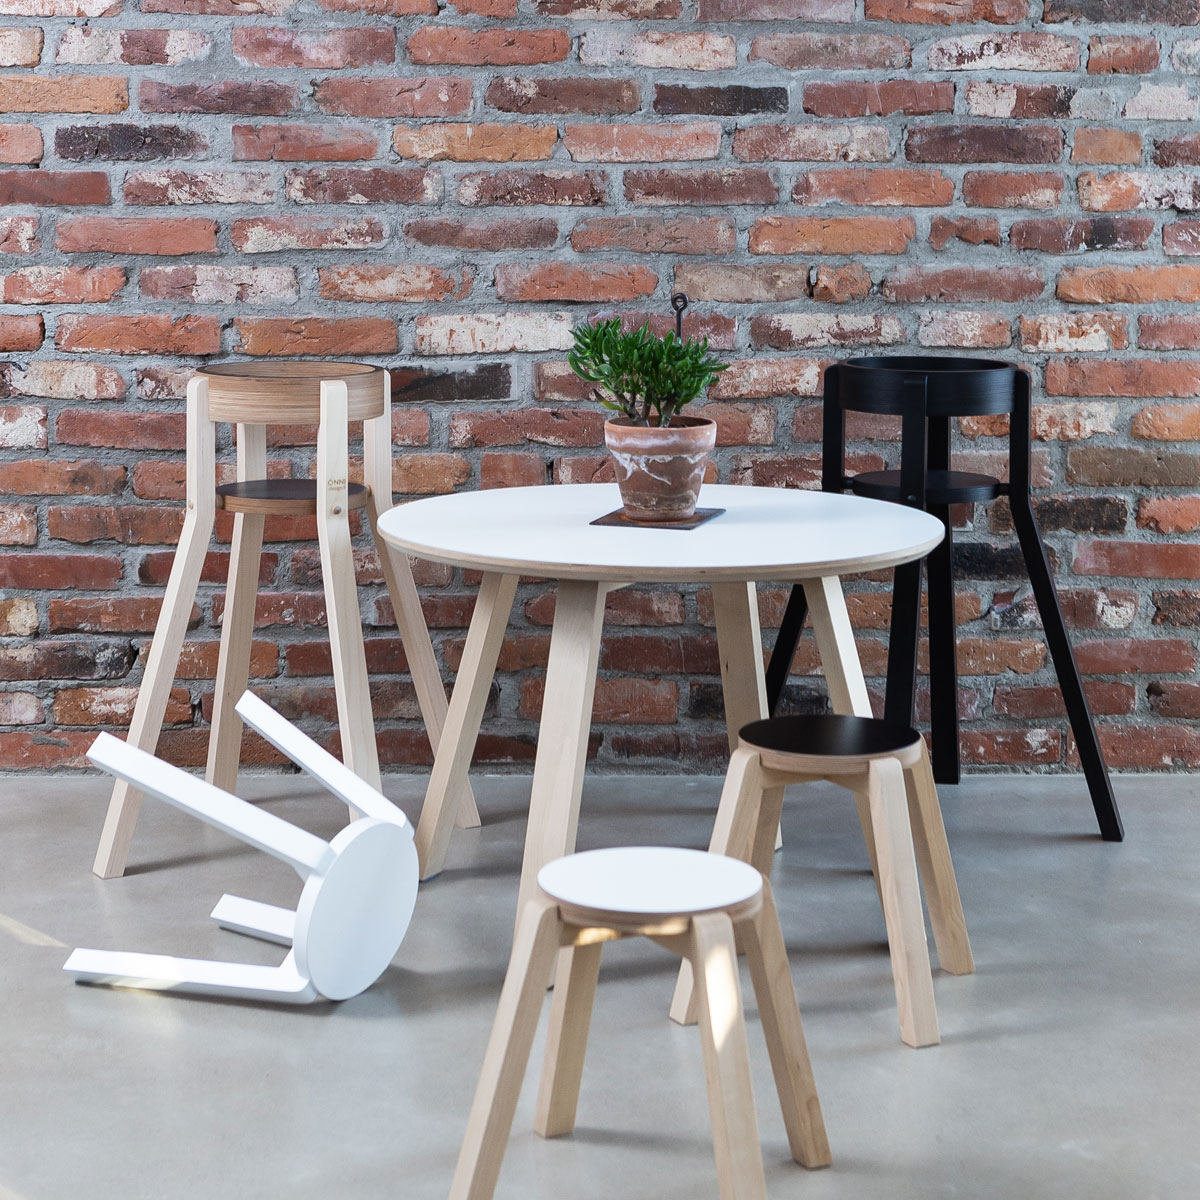 Onni Table